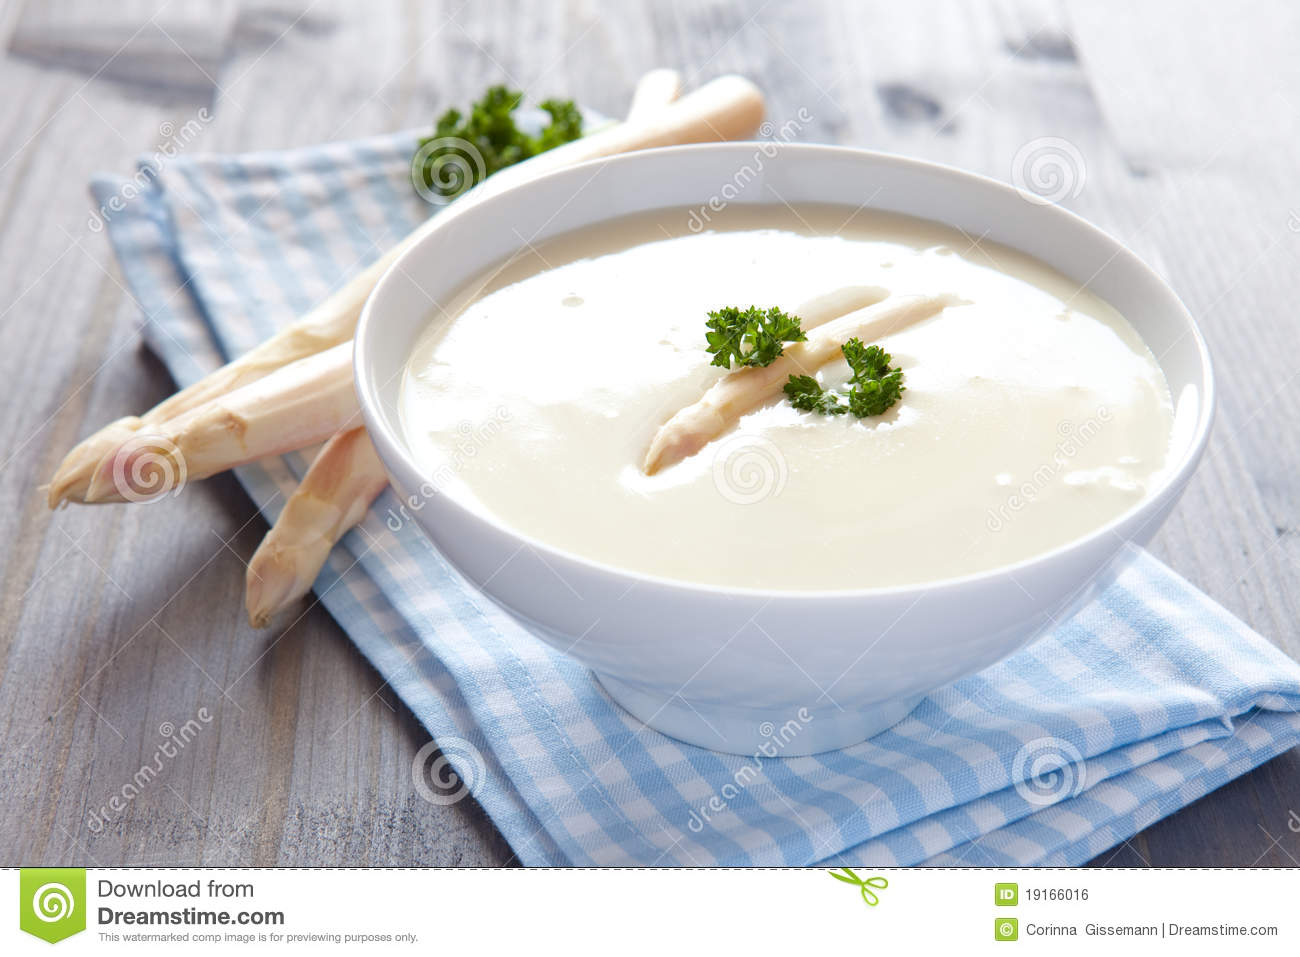 Fresh Asparagus Soup Royalty Free Stock Image - Image: 19166016